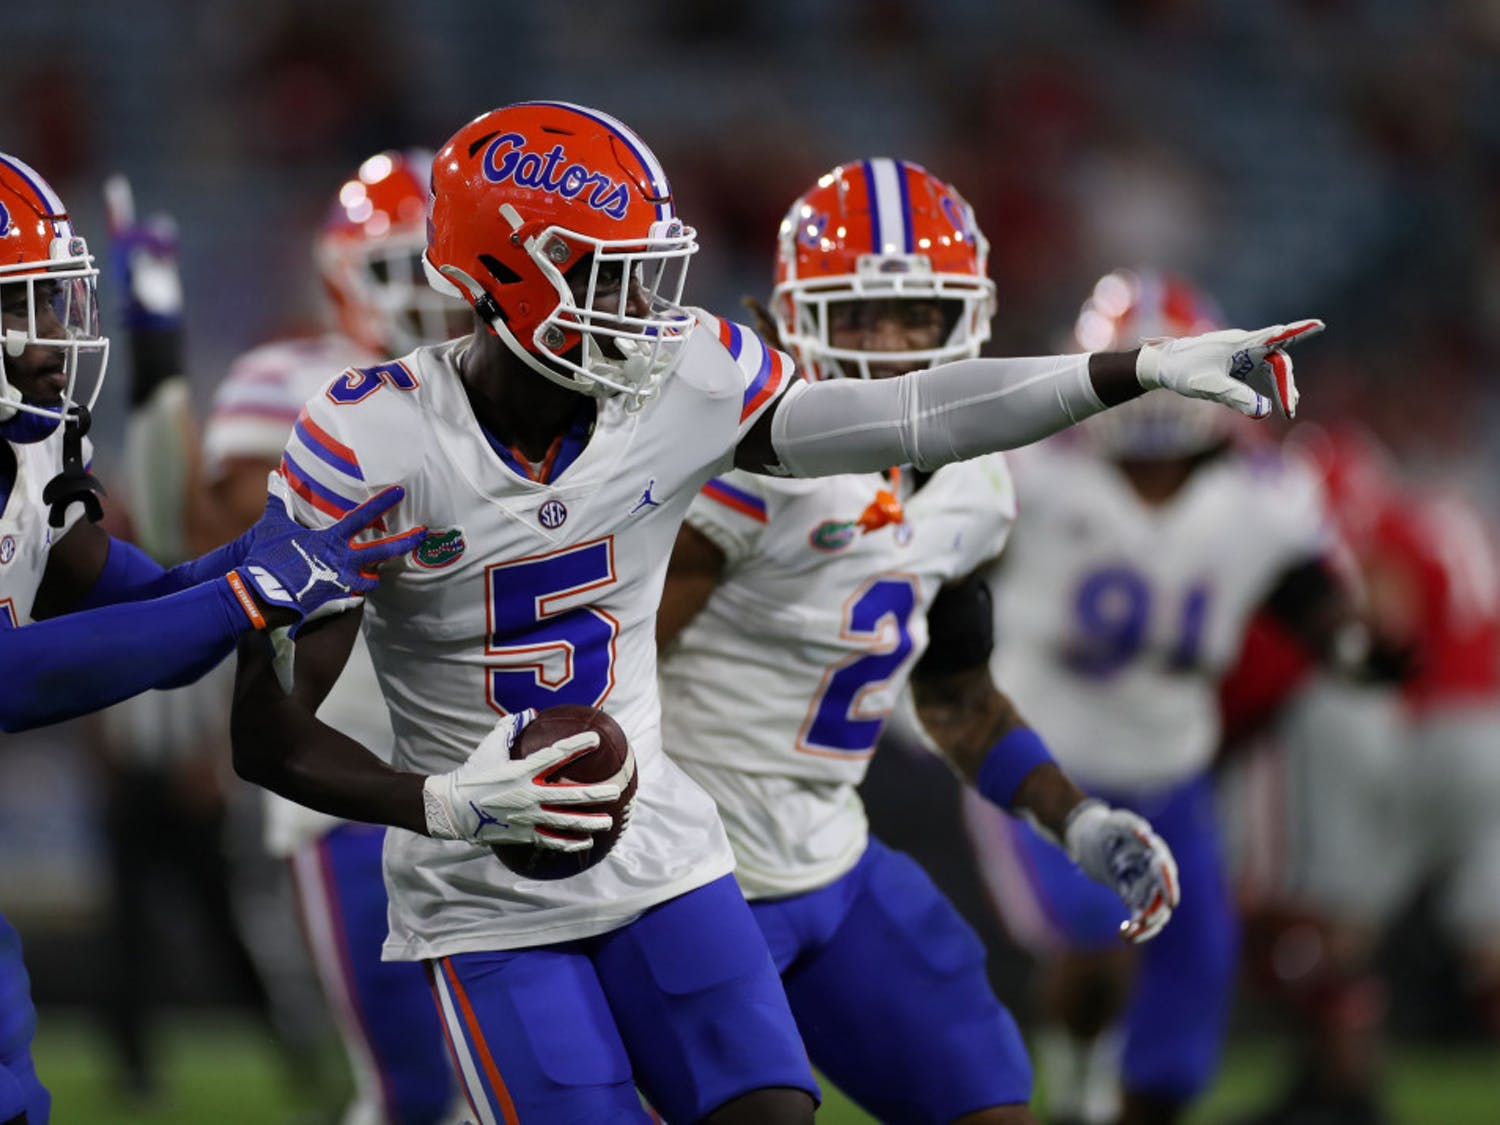 Defensive back Kaiir Elam (5) at the Gators game versus UGA Nov. 7.